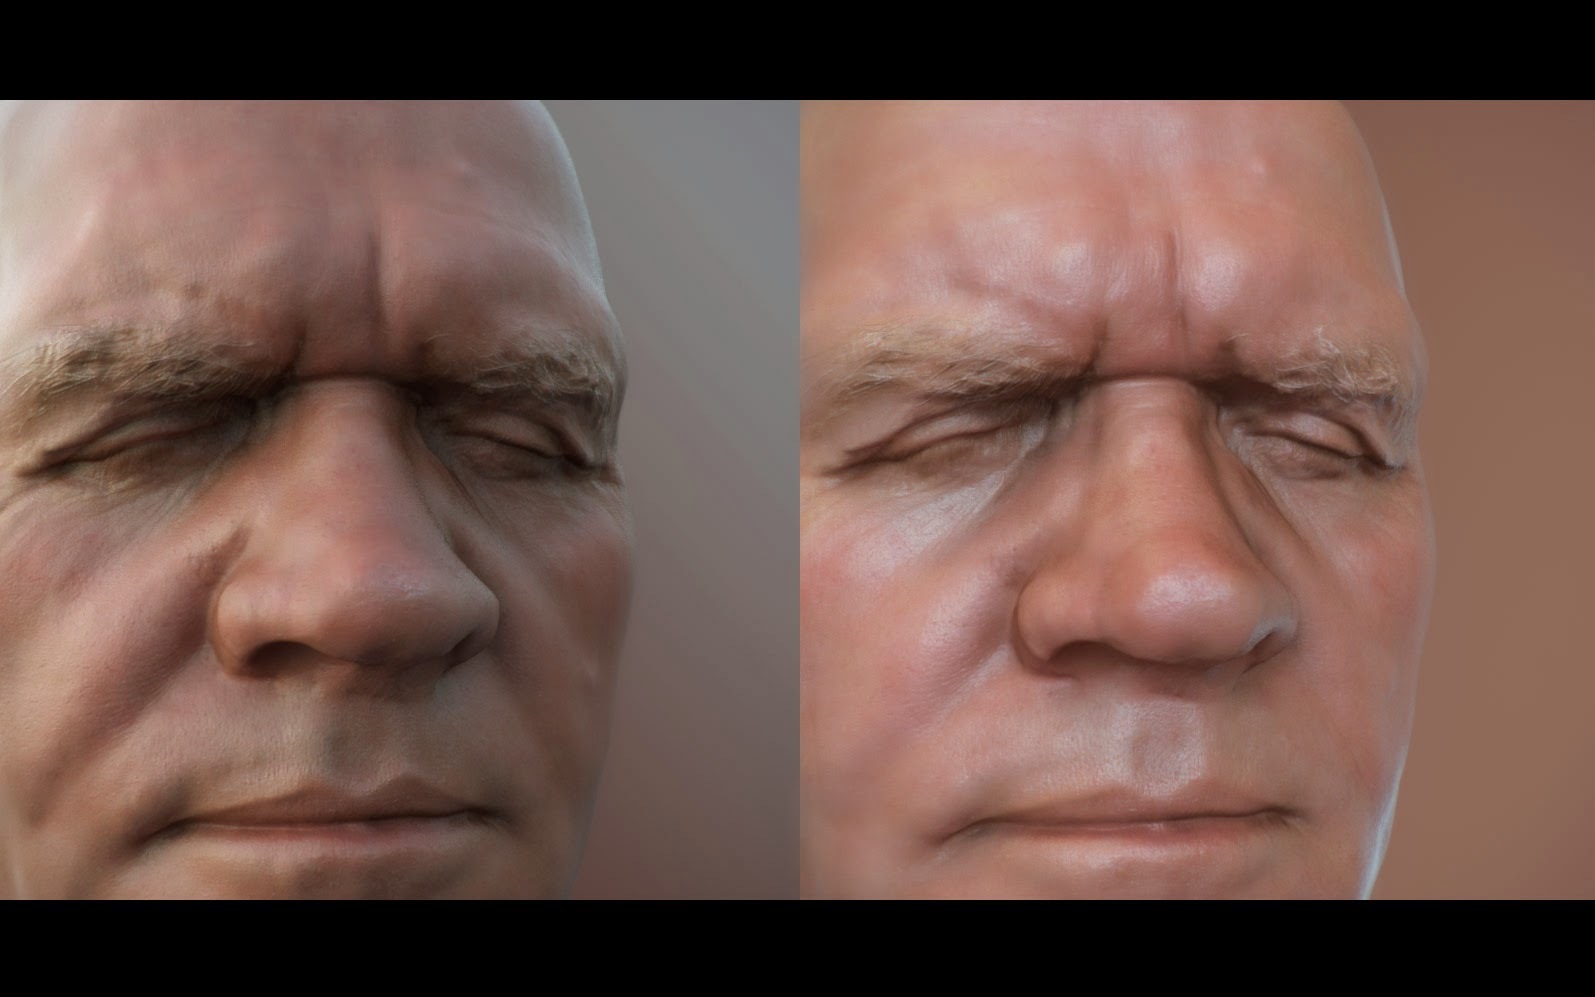 Arnold render for c4d install tutorial - free downloads ...